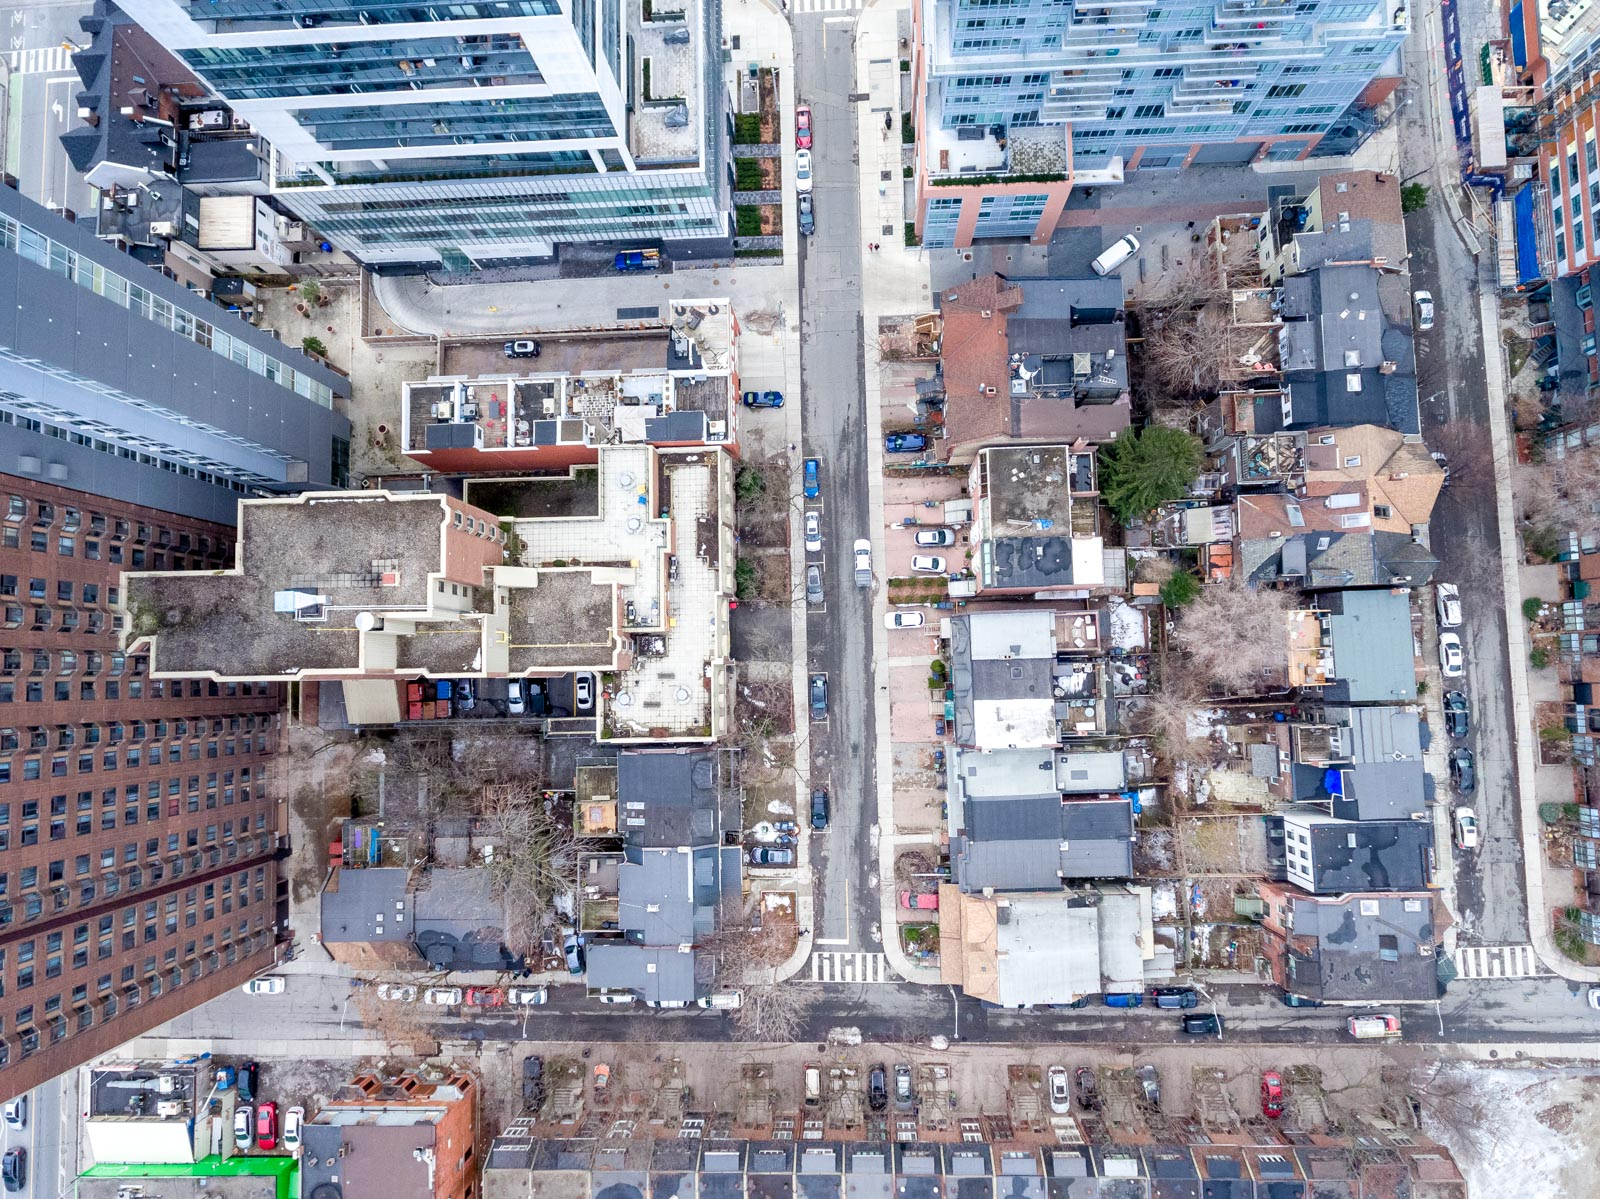 Drone photo of 120 McGill St, Victorian house, surrounded by tall buildings in Toronto.